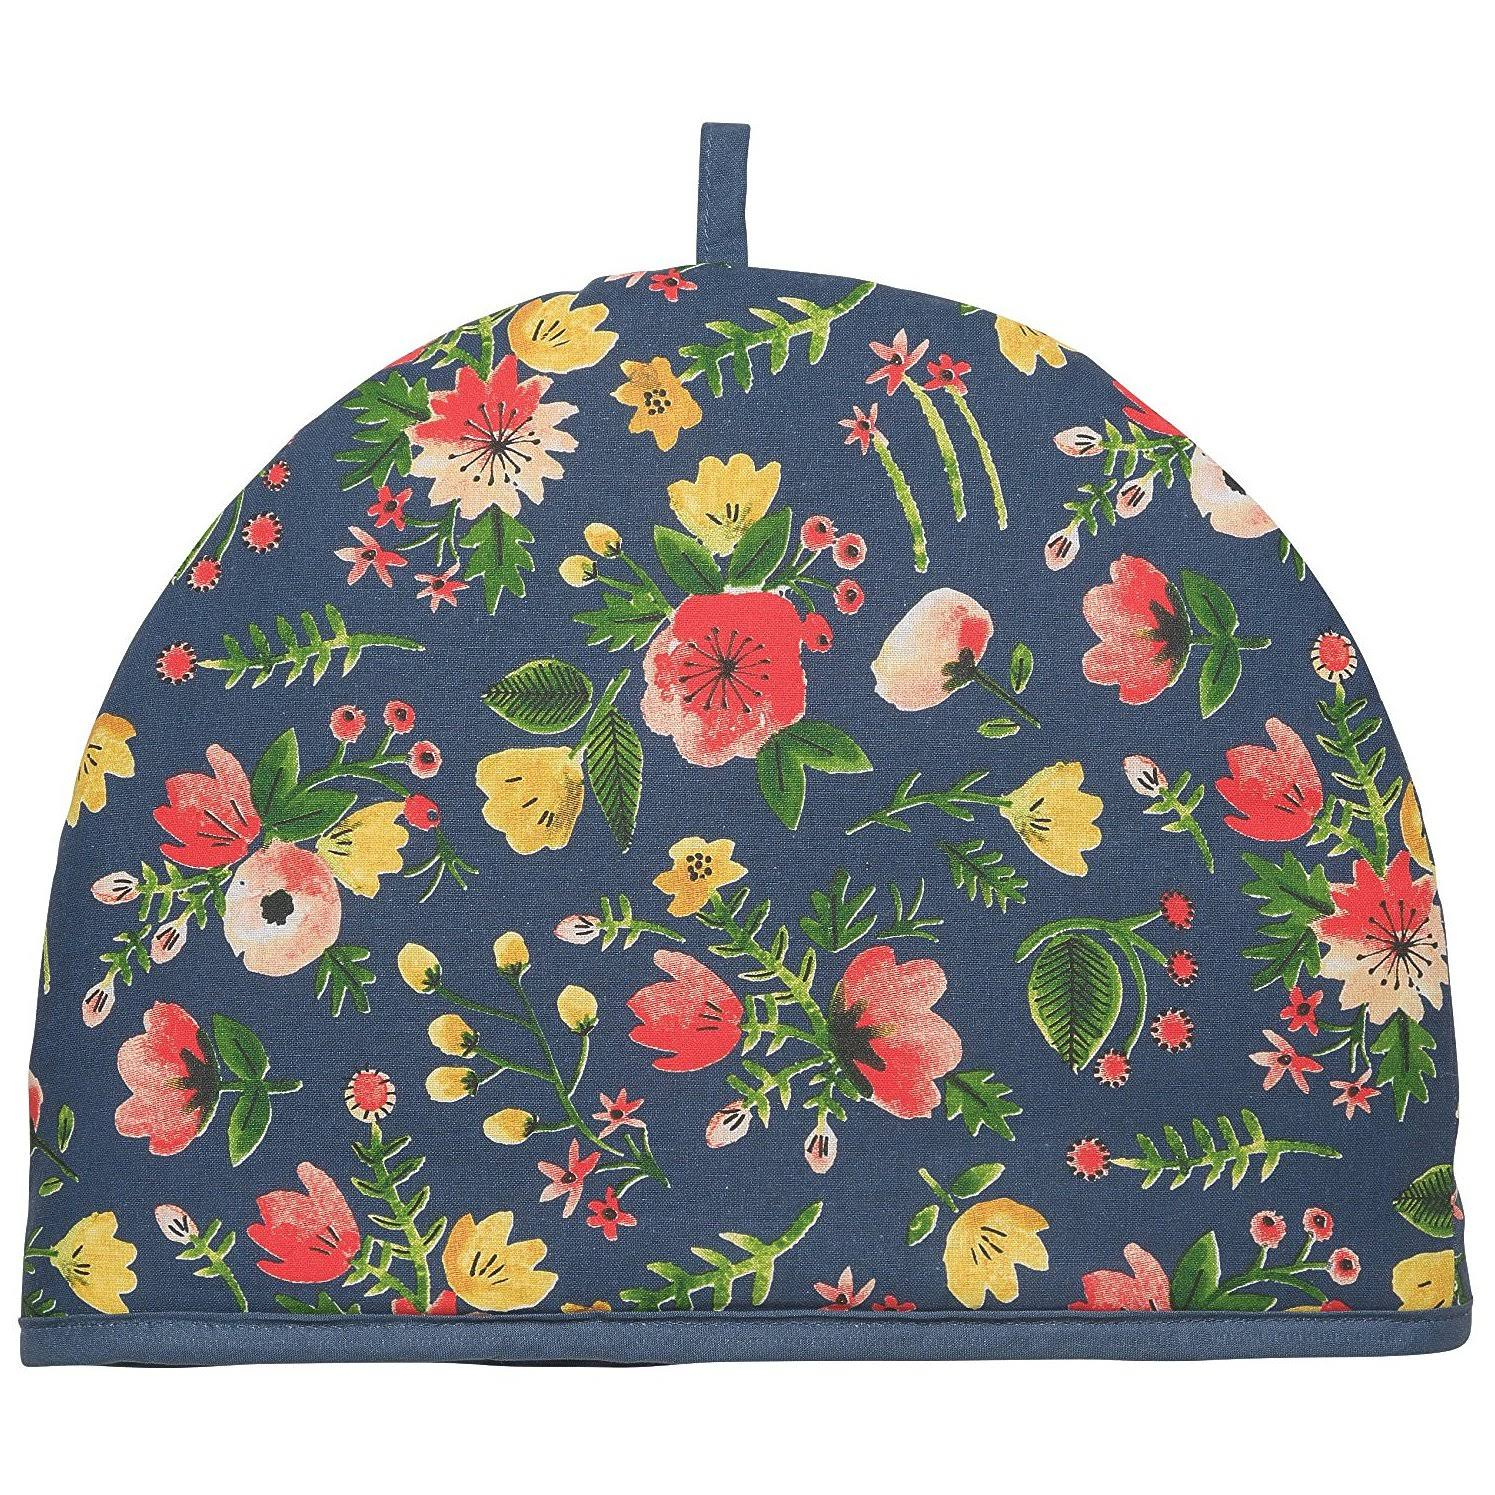 Now Designs Tea Cosy, Midnight Garden | Coffee, Tea & Espresso | Delivery Guaranteed | Best Price Guarantee | Free Shipping on All orders